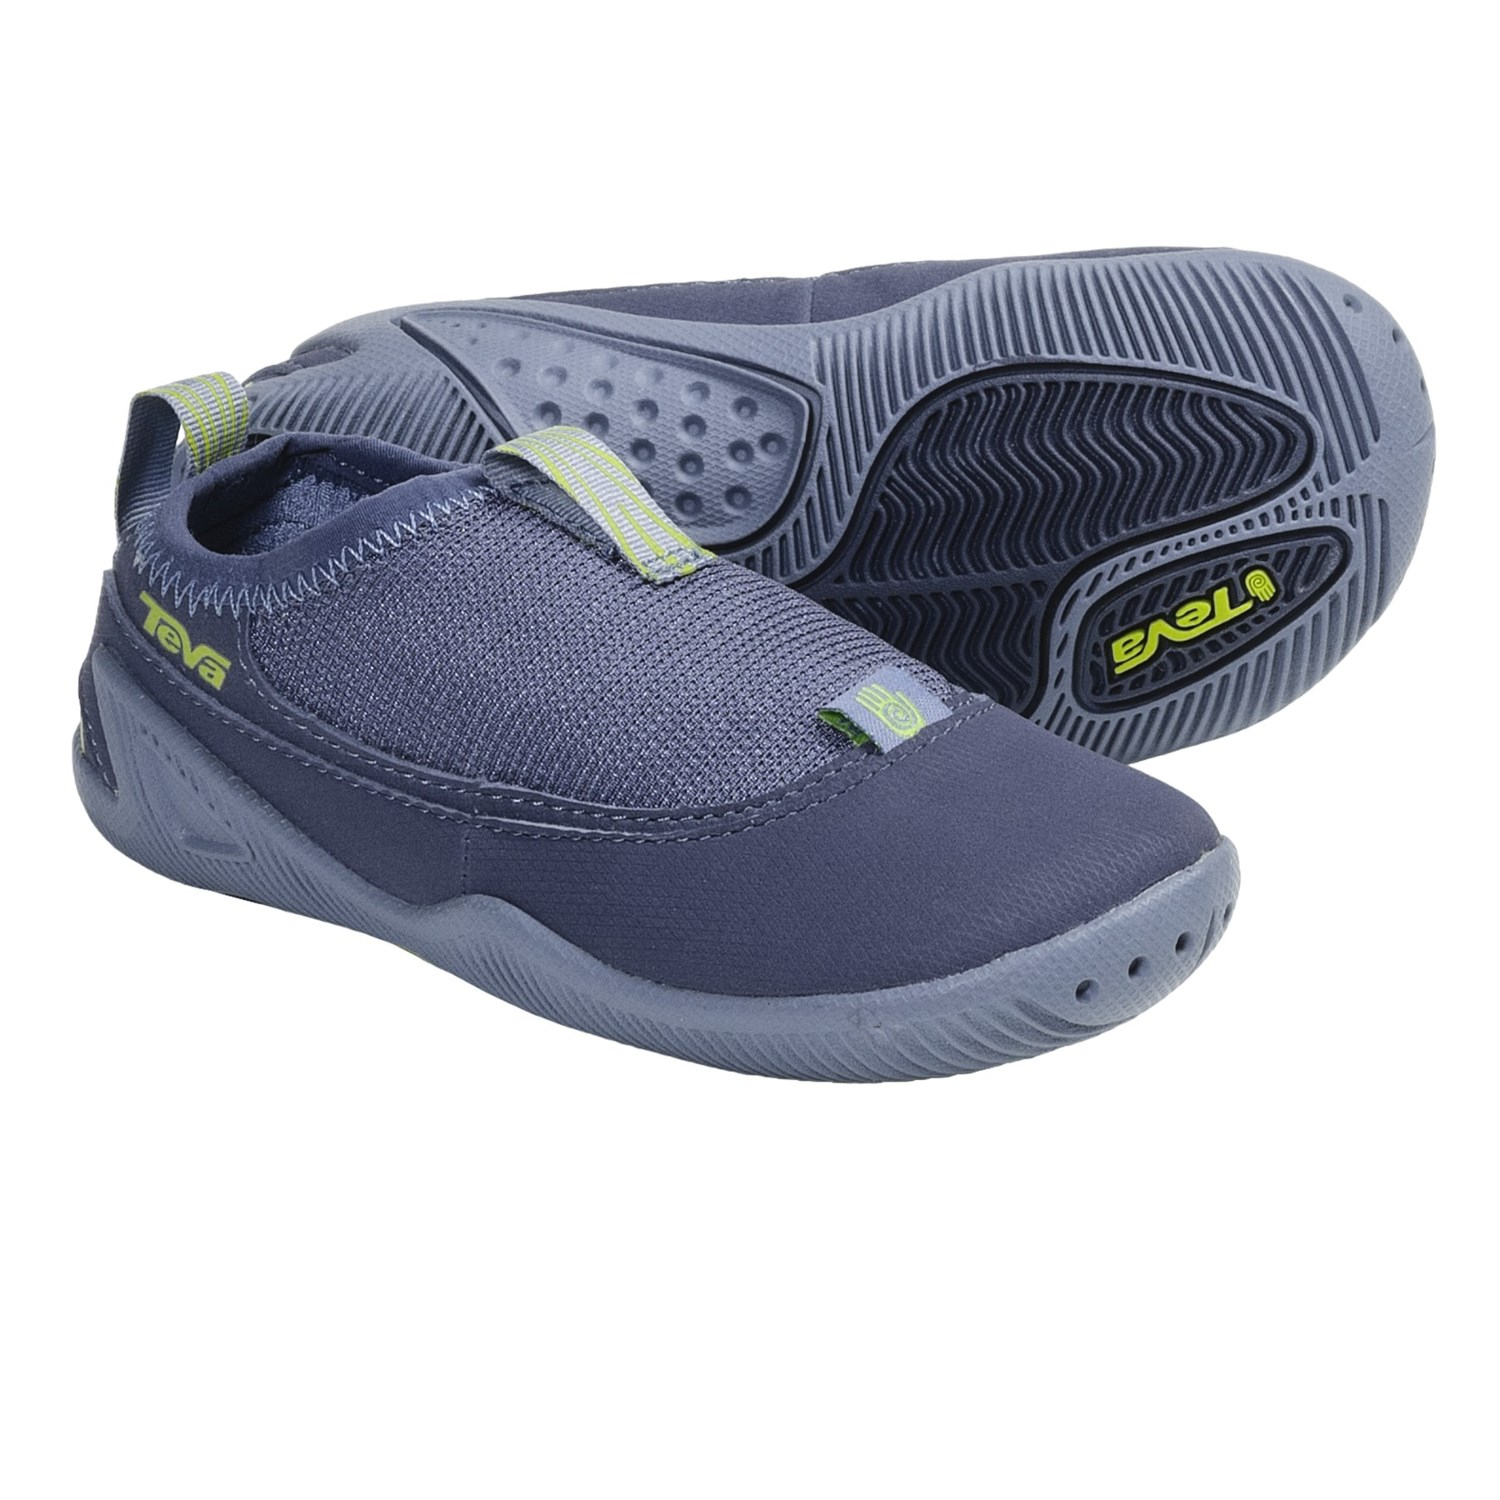 teva nilch water shoes minimalist for save 57